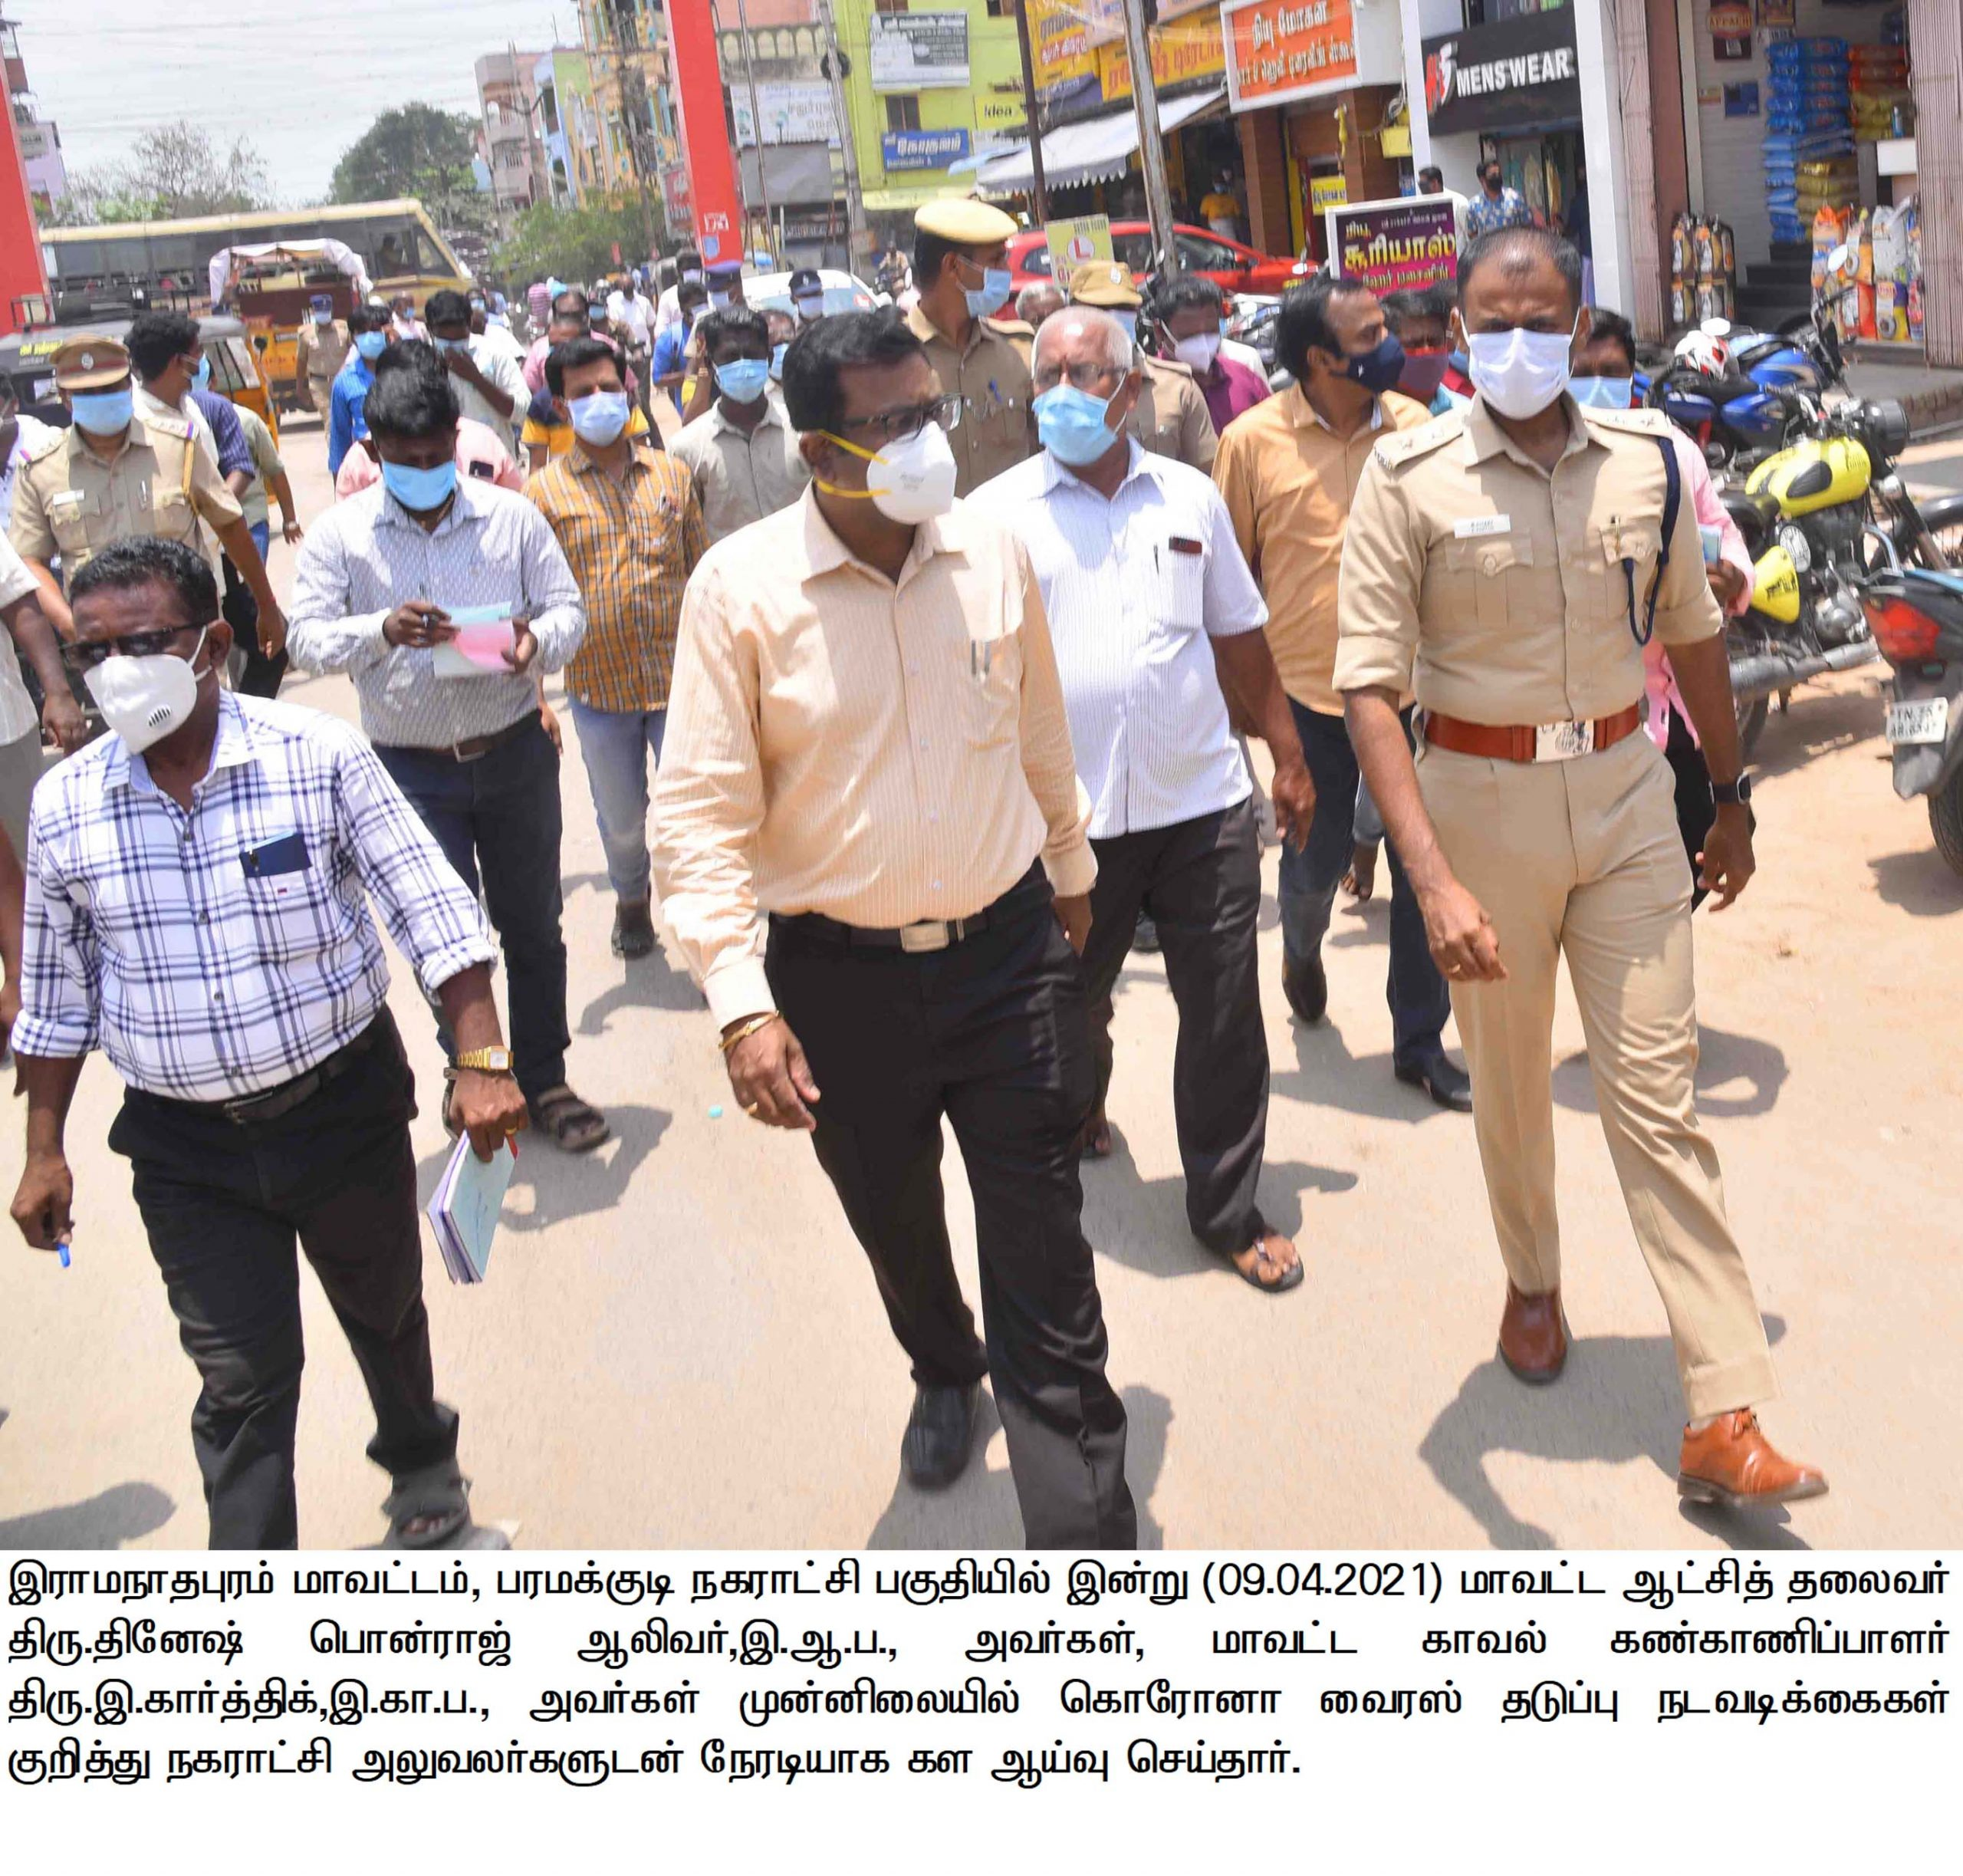 CORONA PRECAUTION_COLLECTOR INSPECTION PMK-NEWS AND PHOTOS_09/04/2021